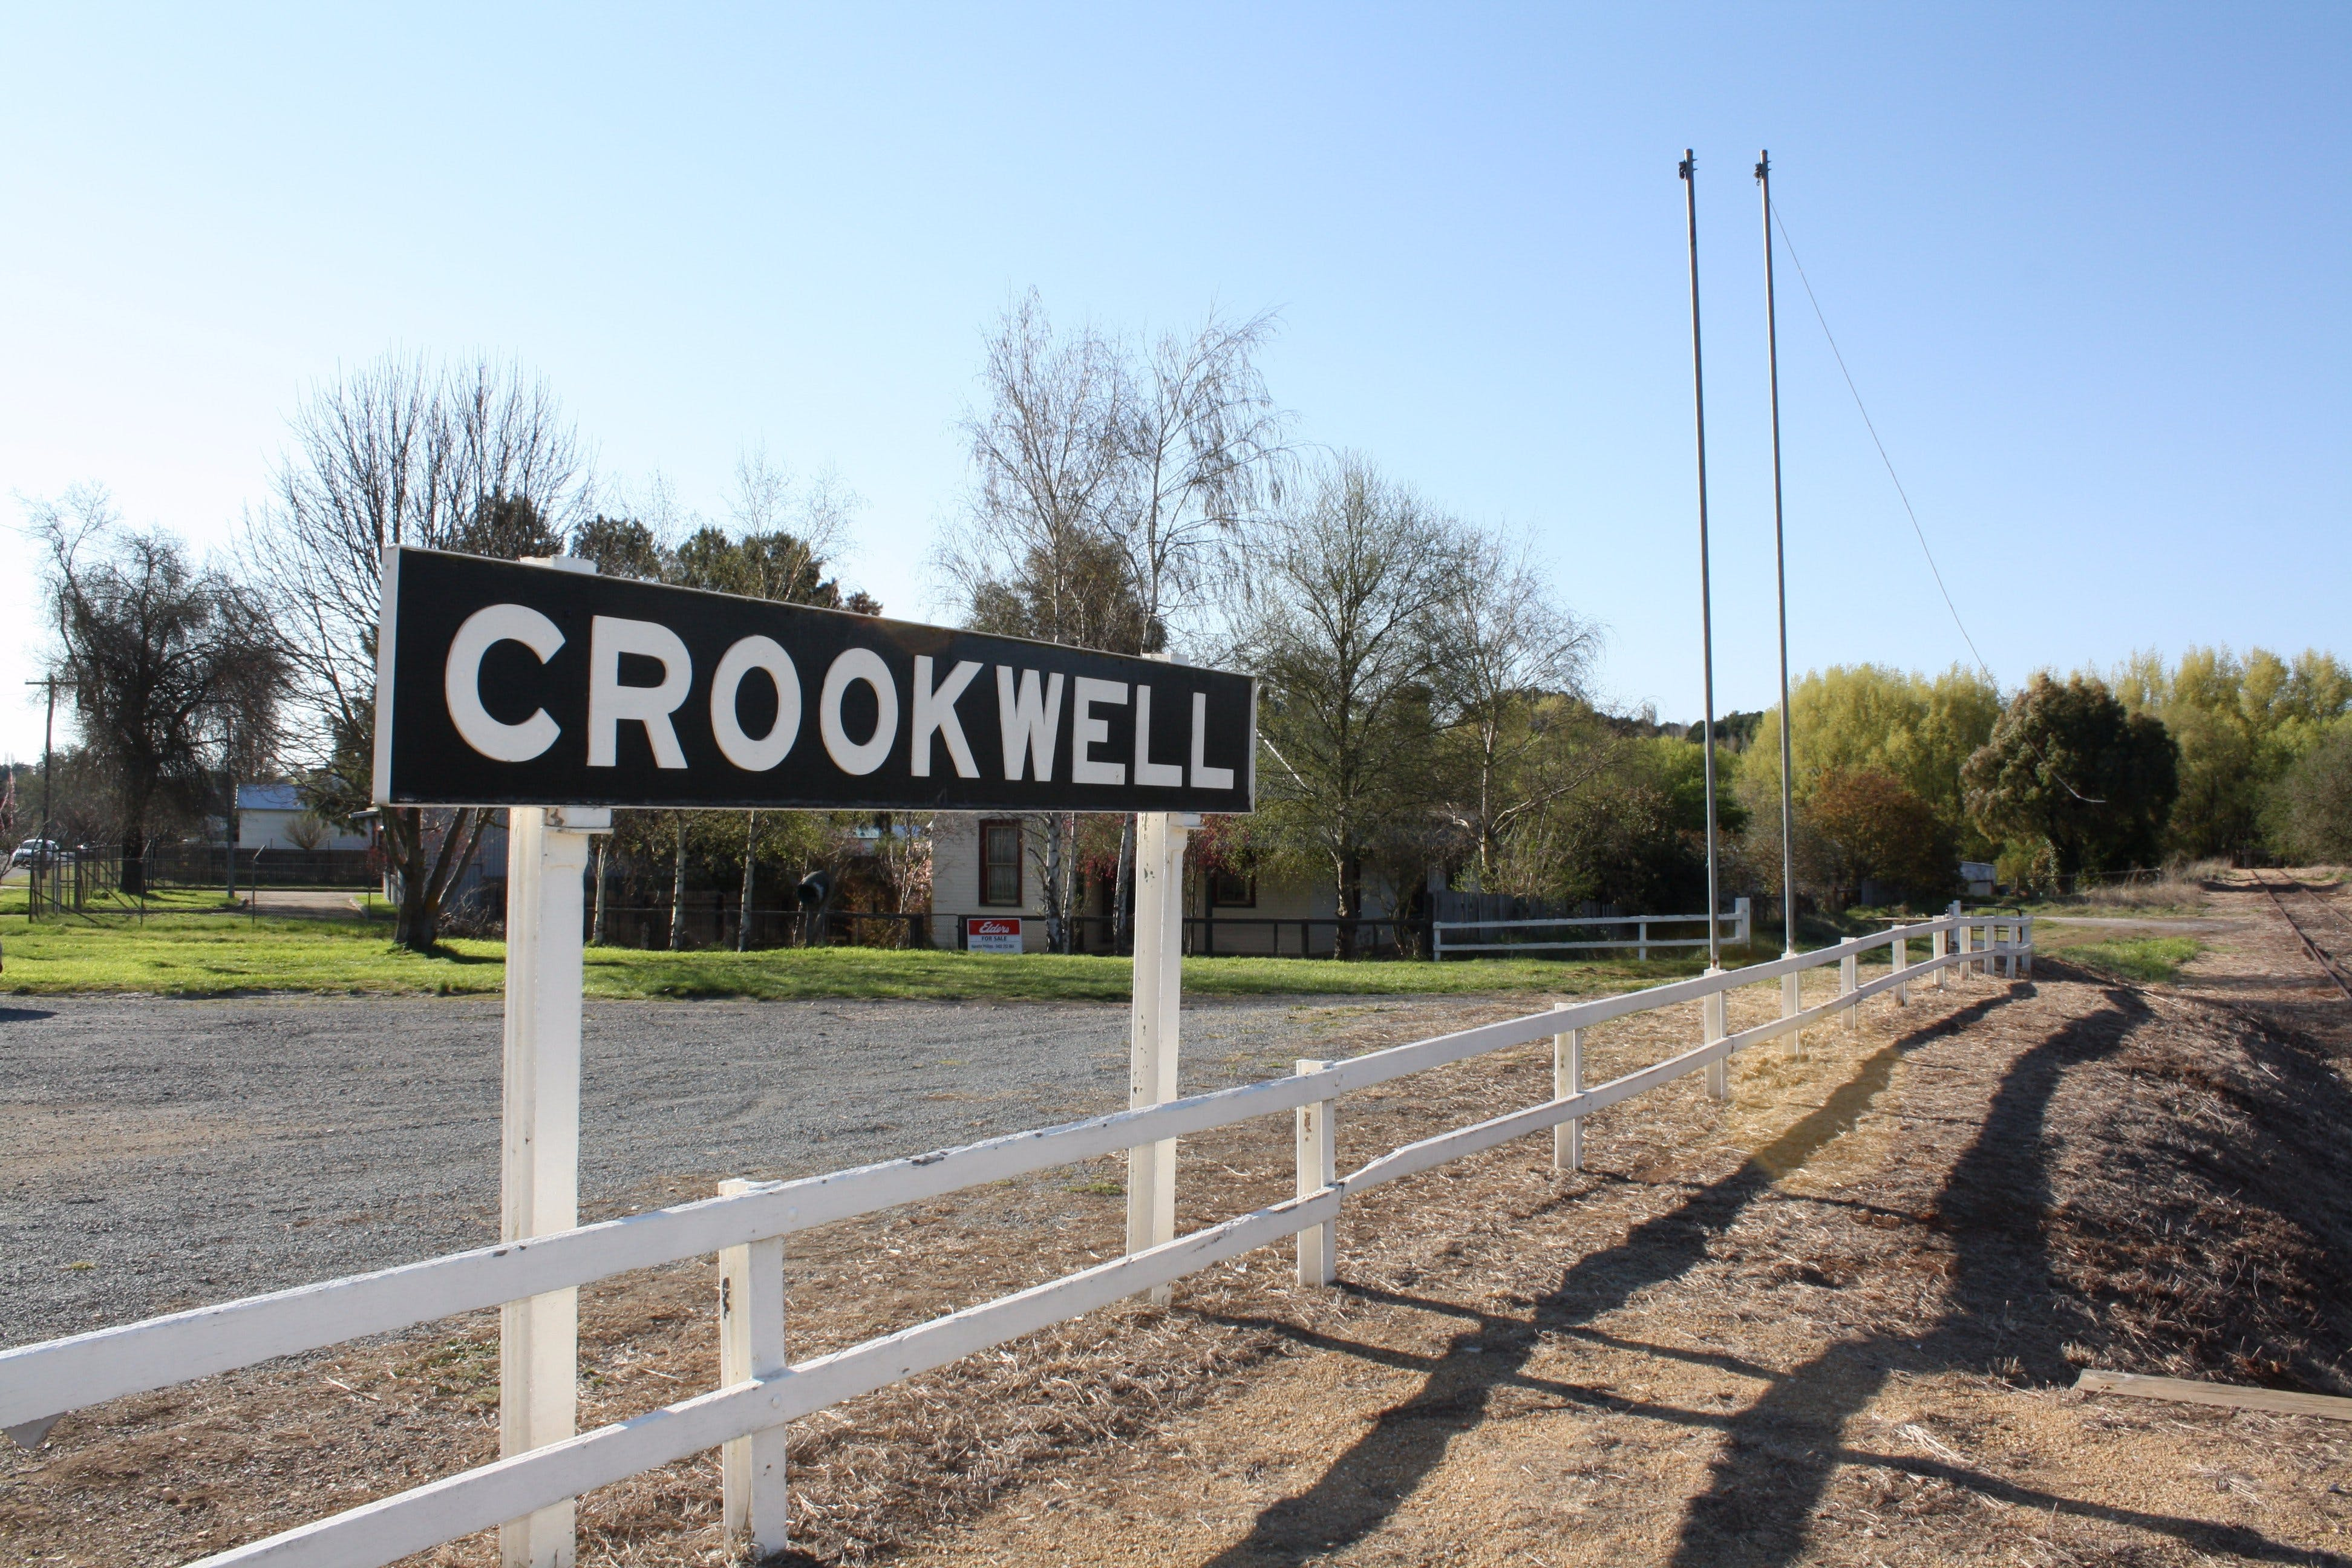 Crookwell Railway Station - Accommodation Cairns